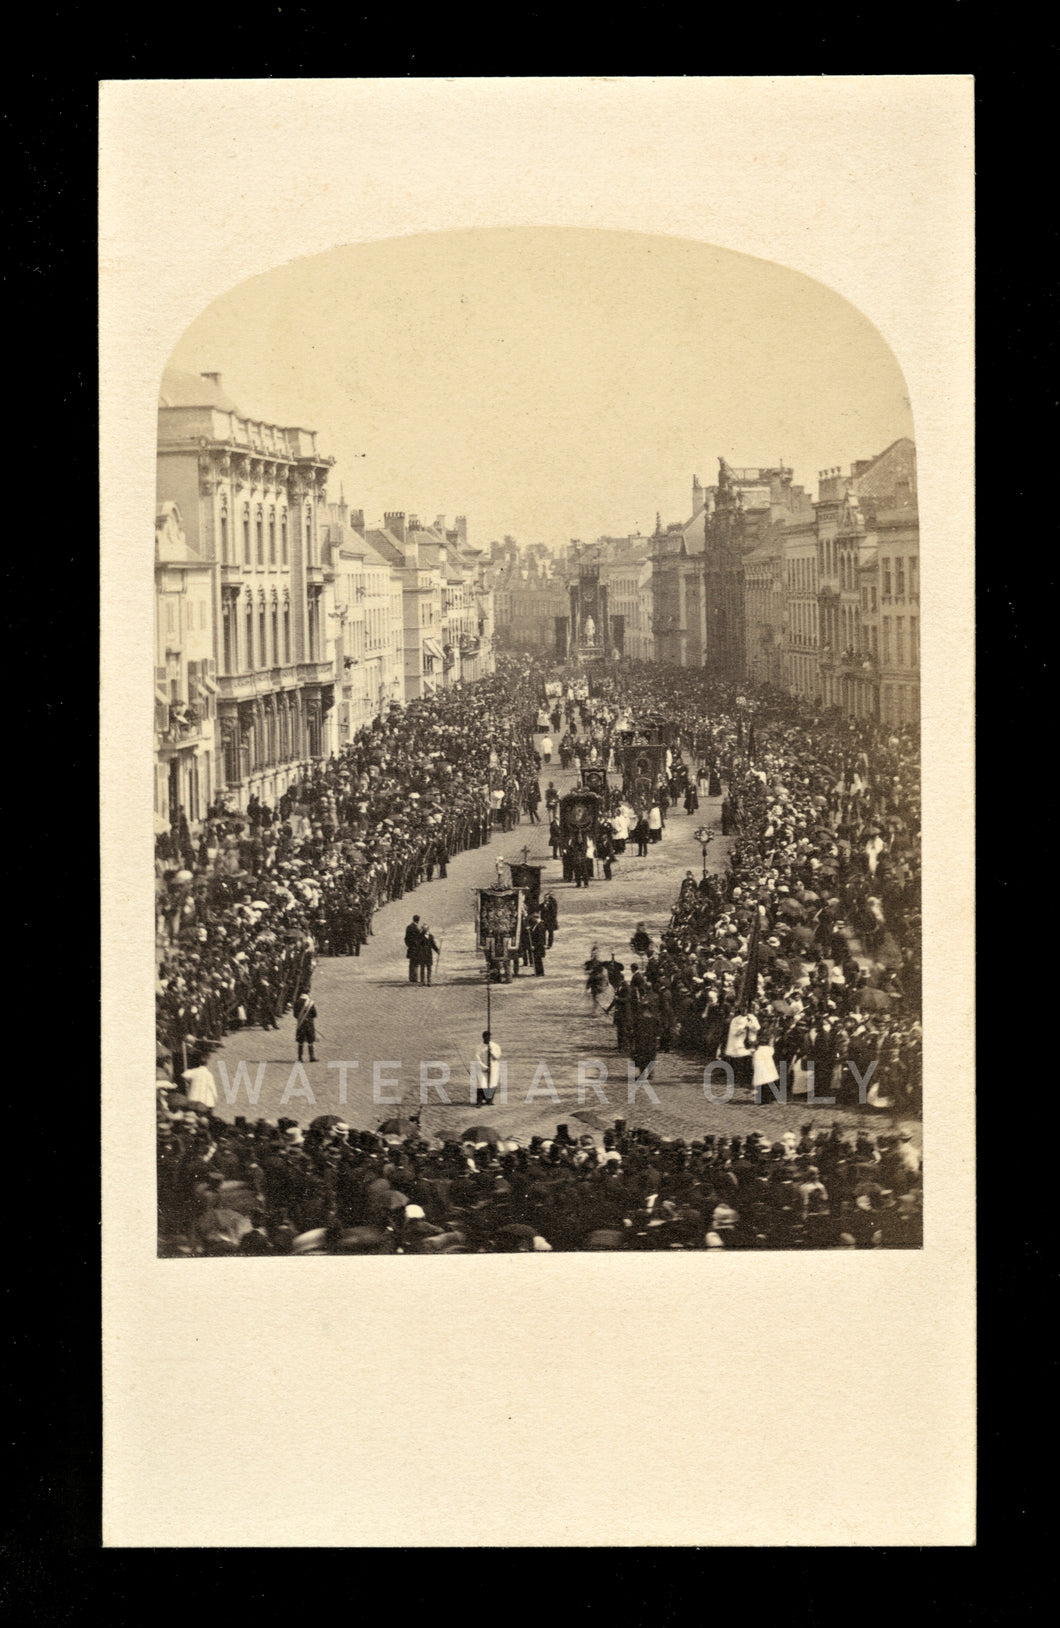 Rare 1860s Photo Outdoor Street Scene Big Crowd Buildings Religious Procession